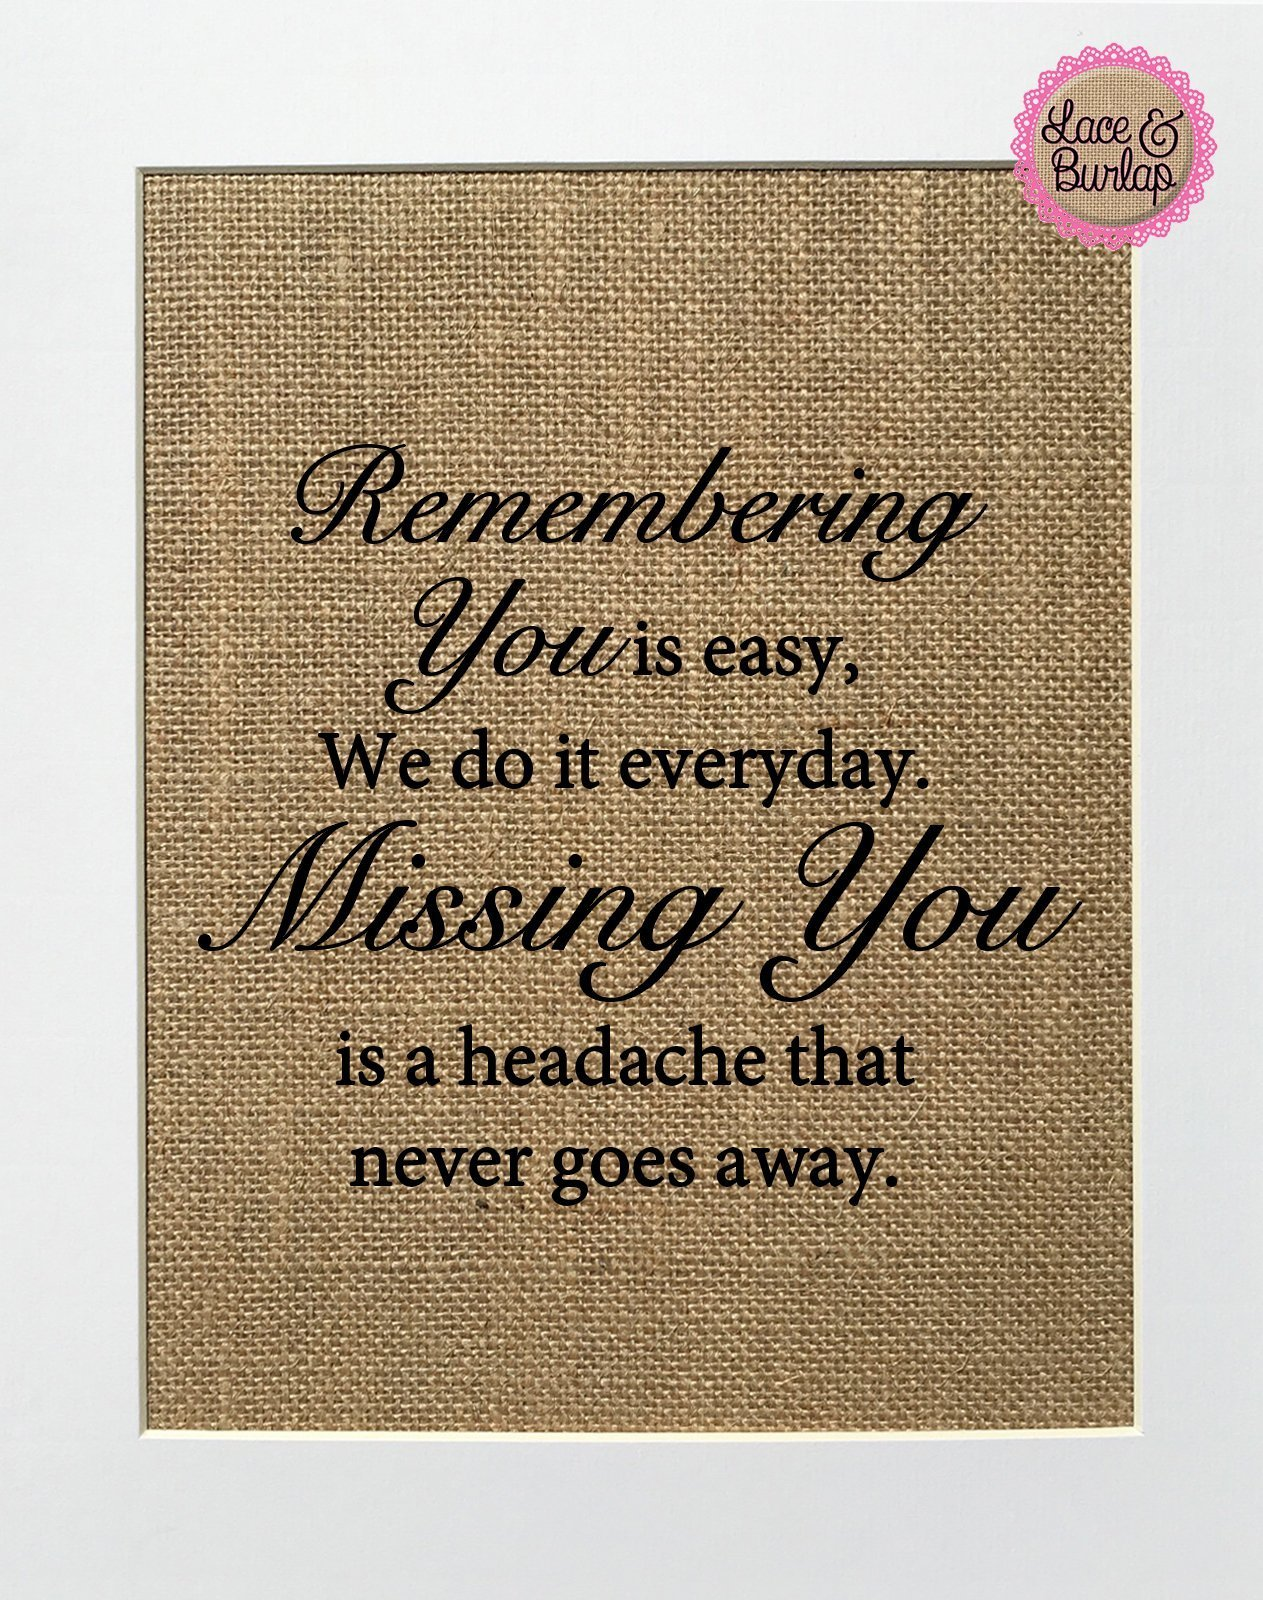 8x10 UNFRAMED Remembering You is Easy, We Do it Everyday, Missing You is a Headache That Never Goes Away / Burlap Print Sign / Memorial gift In Loving Memory Loved Ones Rustic Wall Home Decor